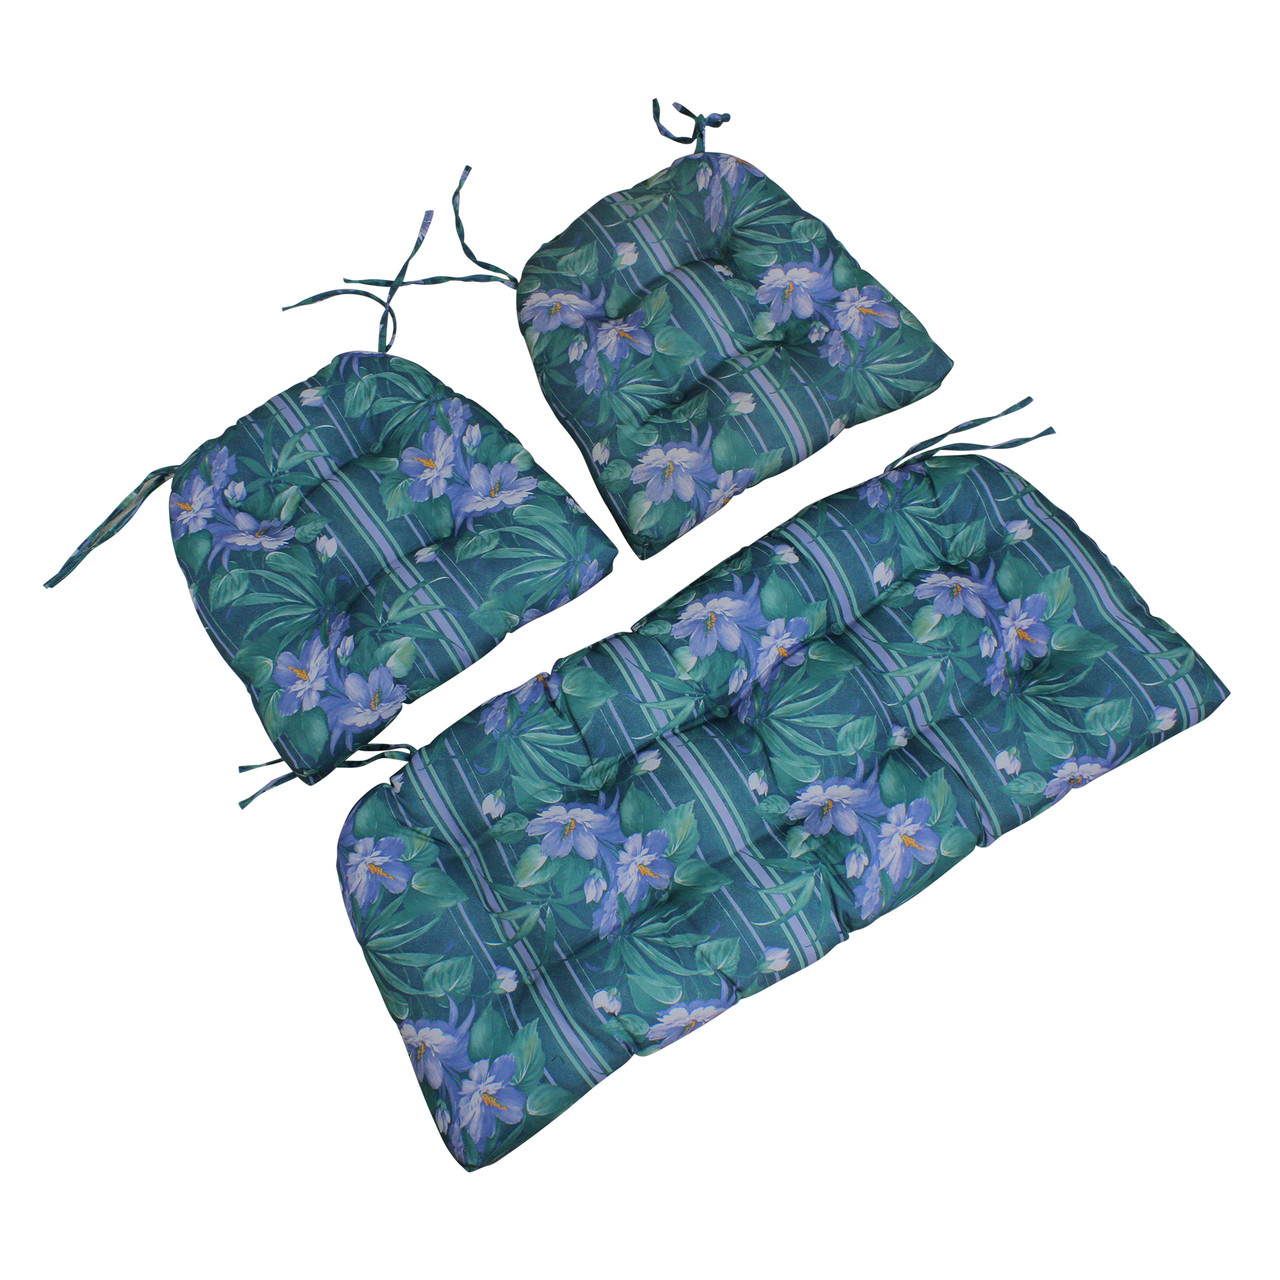 3pc blue and green floral tufted wicker furniture outdoor patio cushions 41